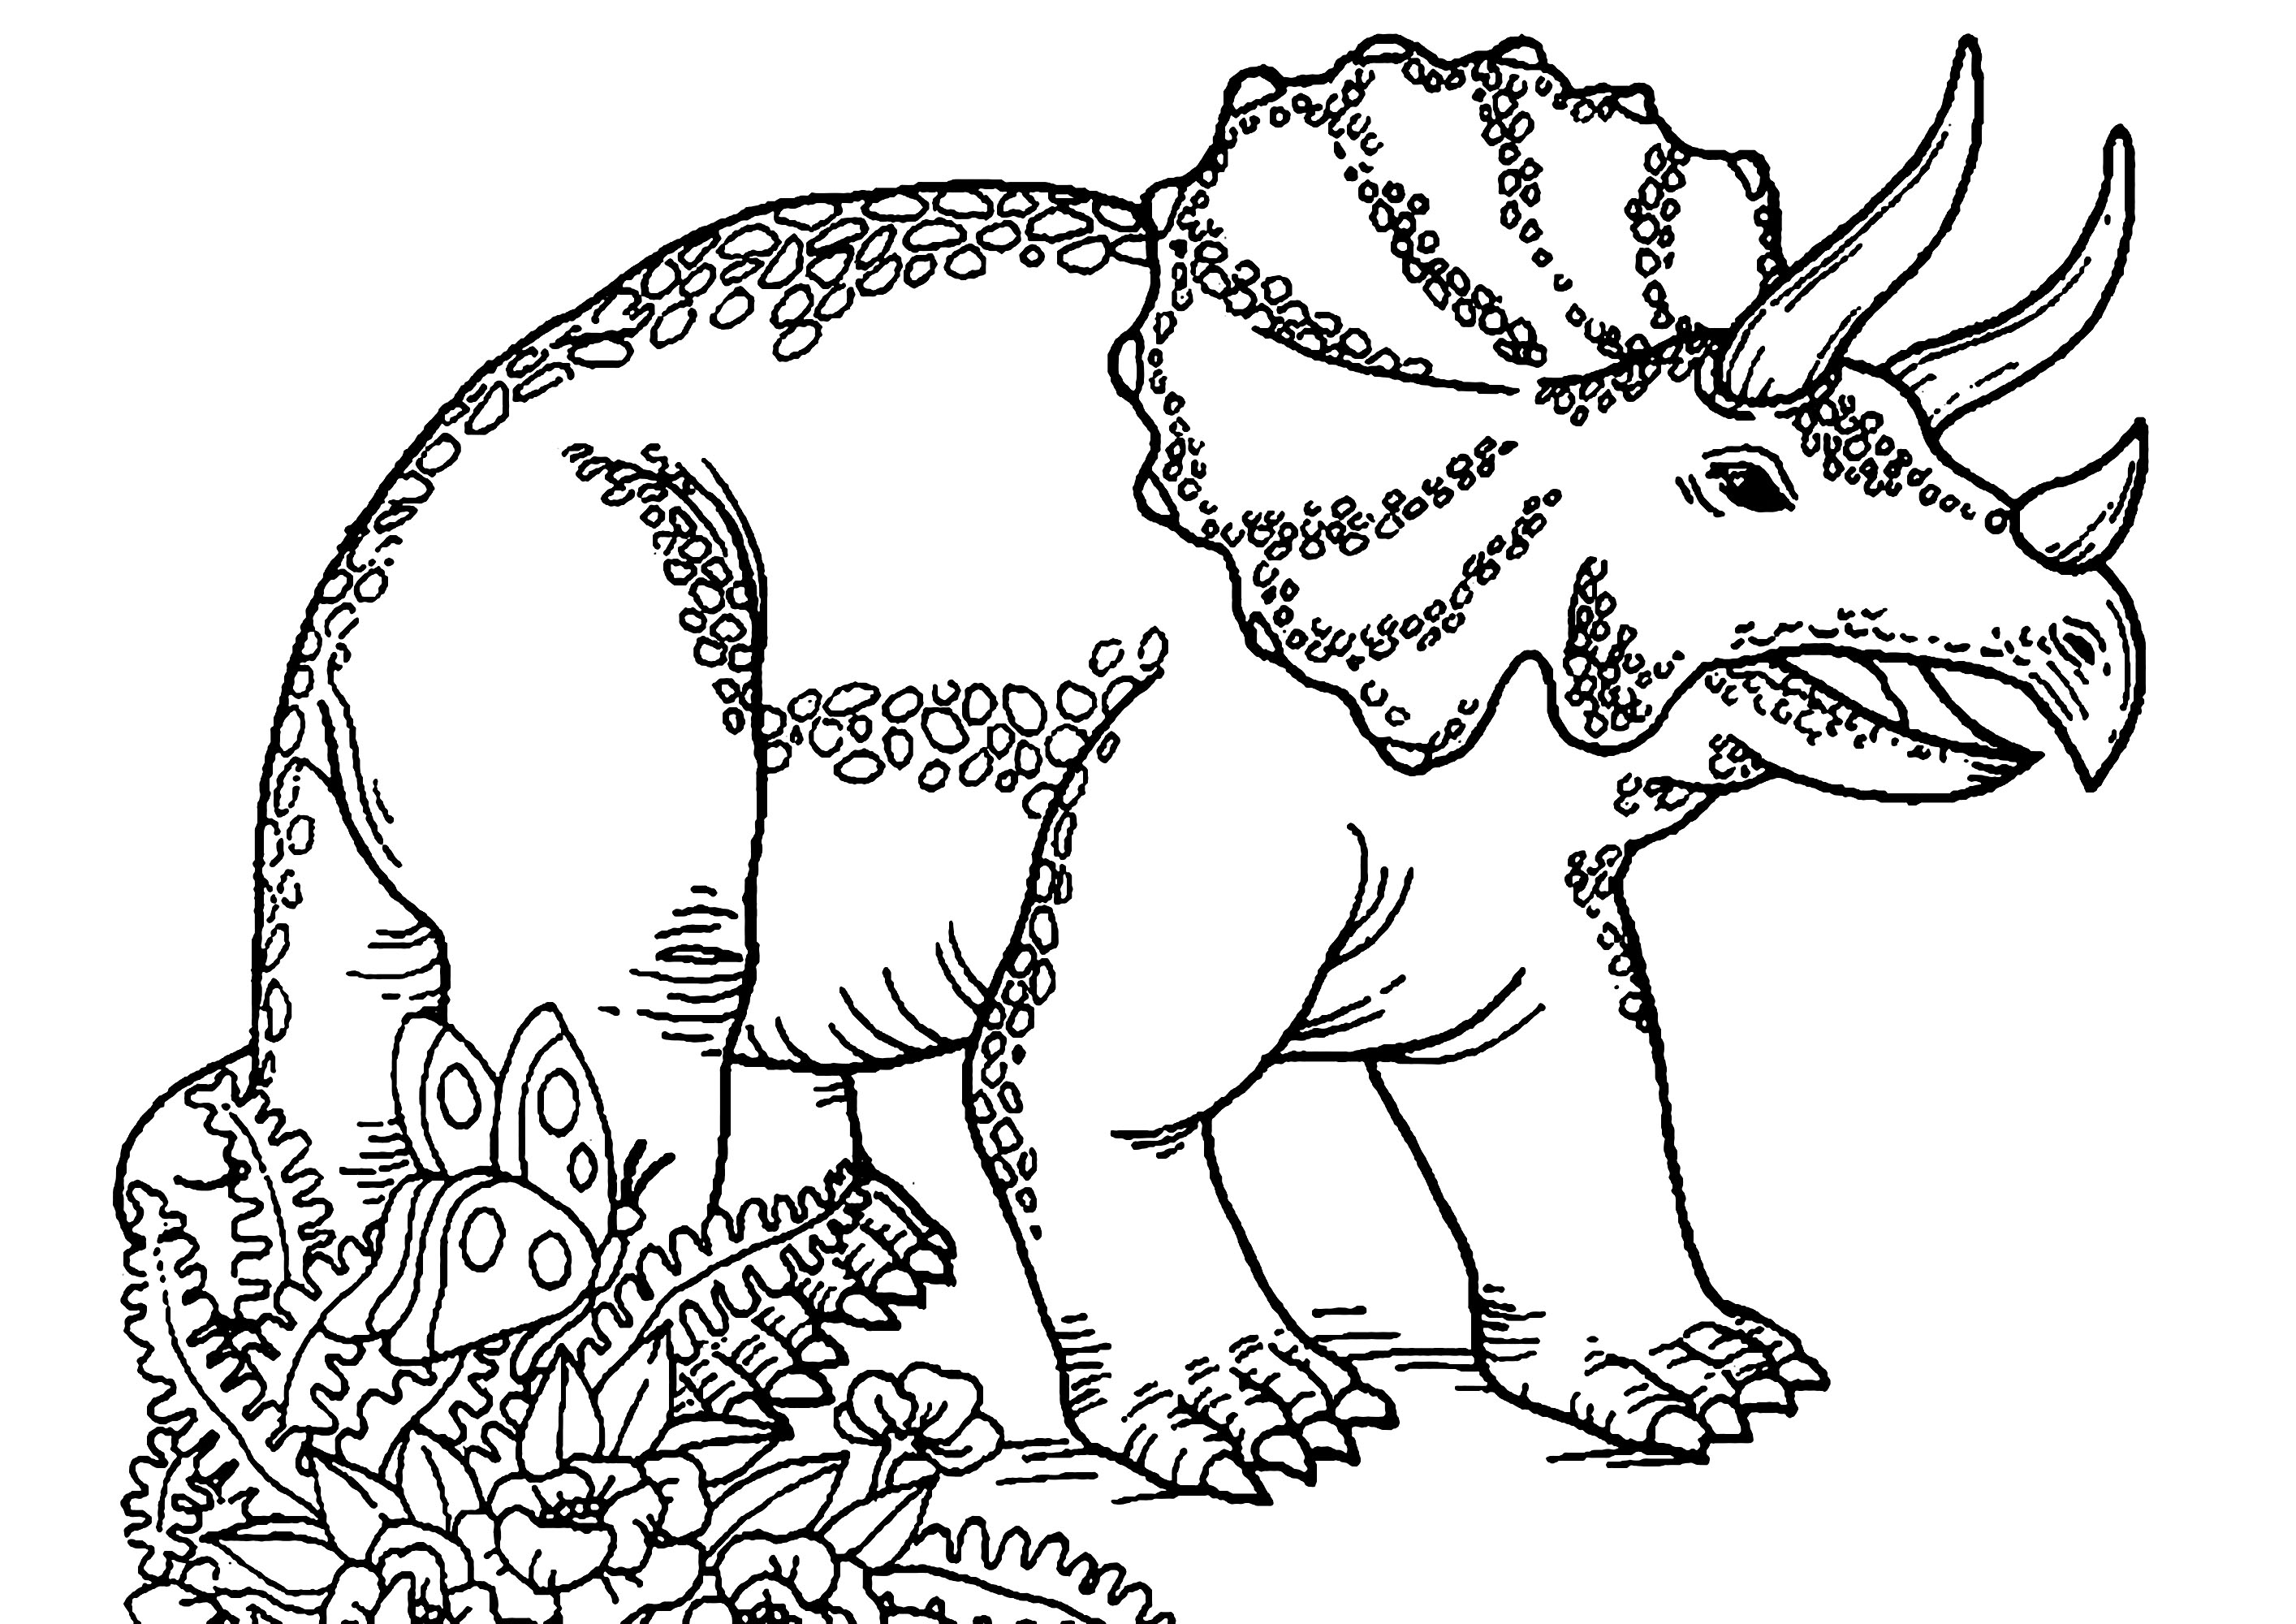 dinosaur colouring pictures to print free printable dinosaur coloring pages for kids dinosaur print pictures colouring to